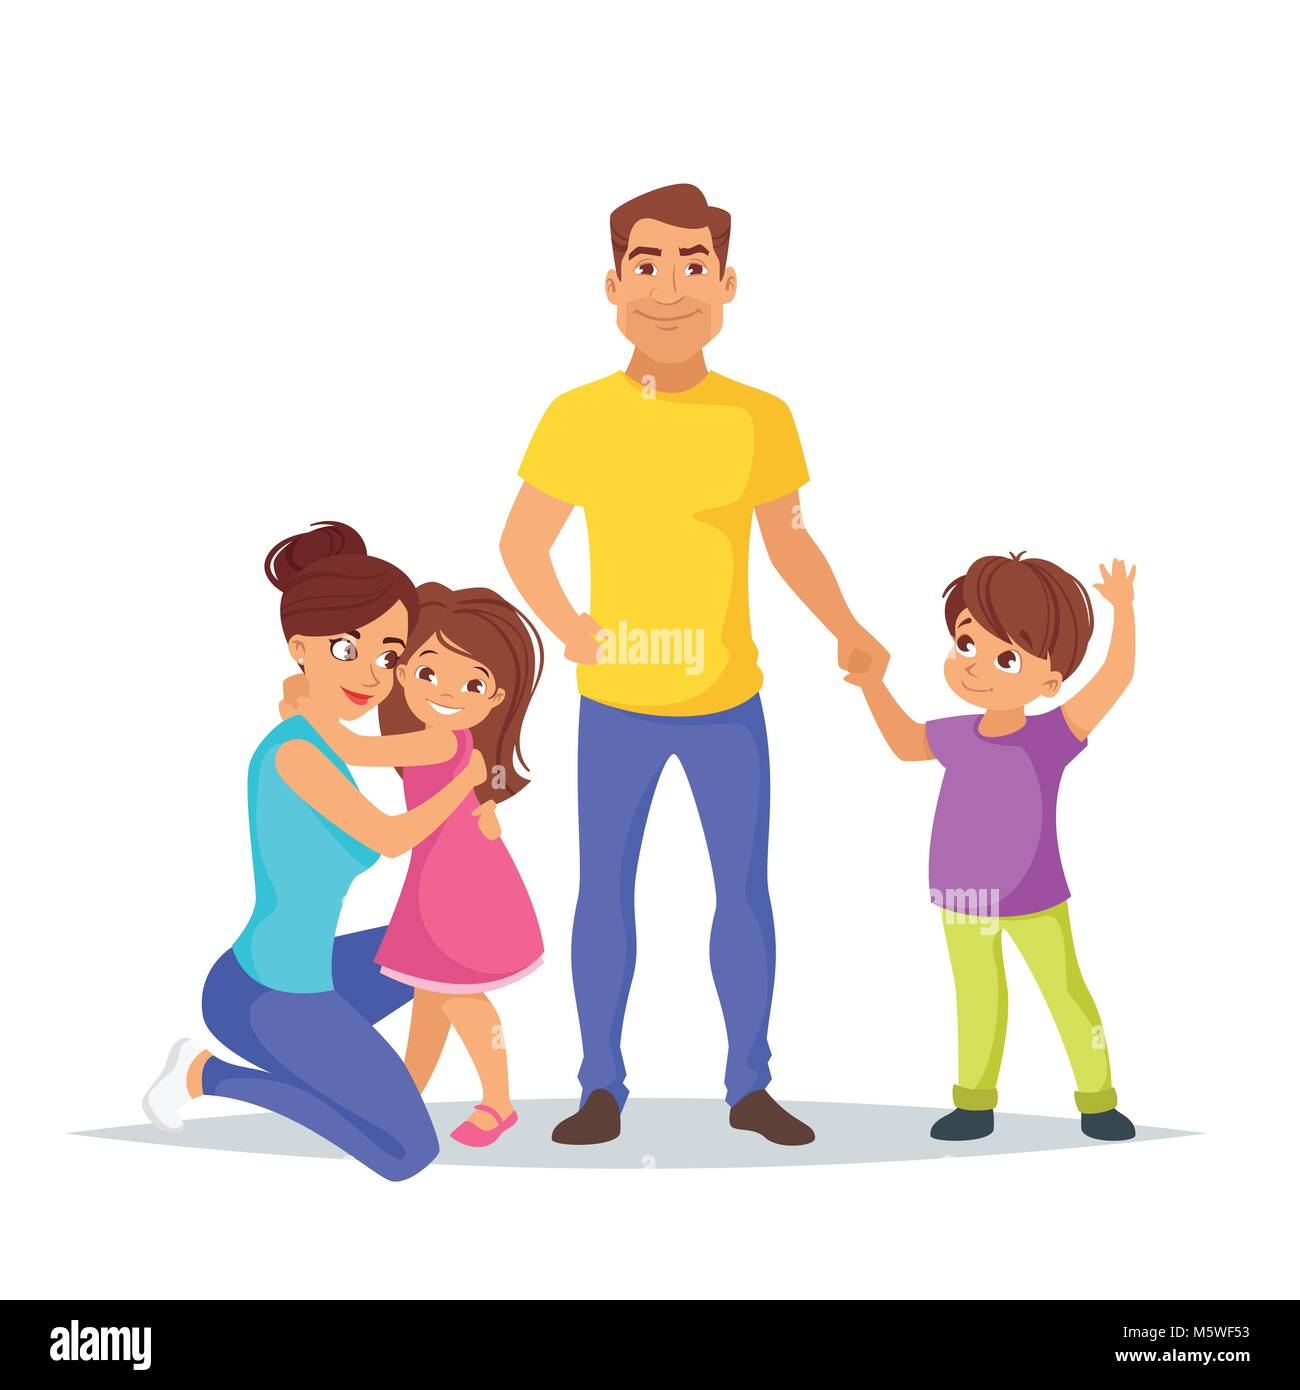 Vector cartoon style illustration of happy Caucasian family members: dad, mother, son. Isolated on white background. - Stock Vector